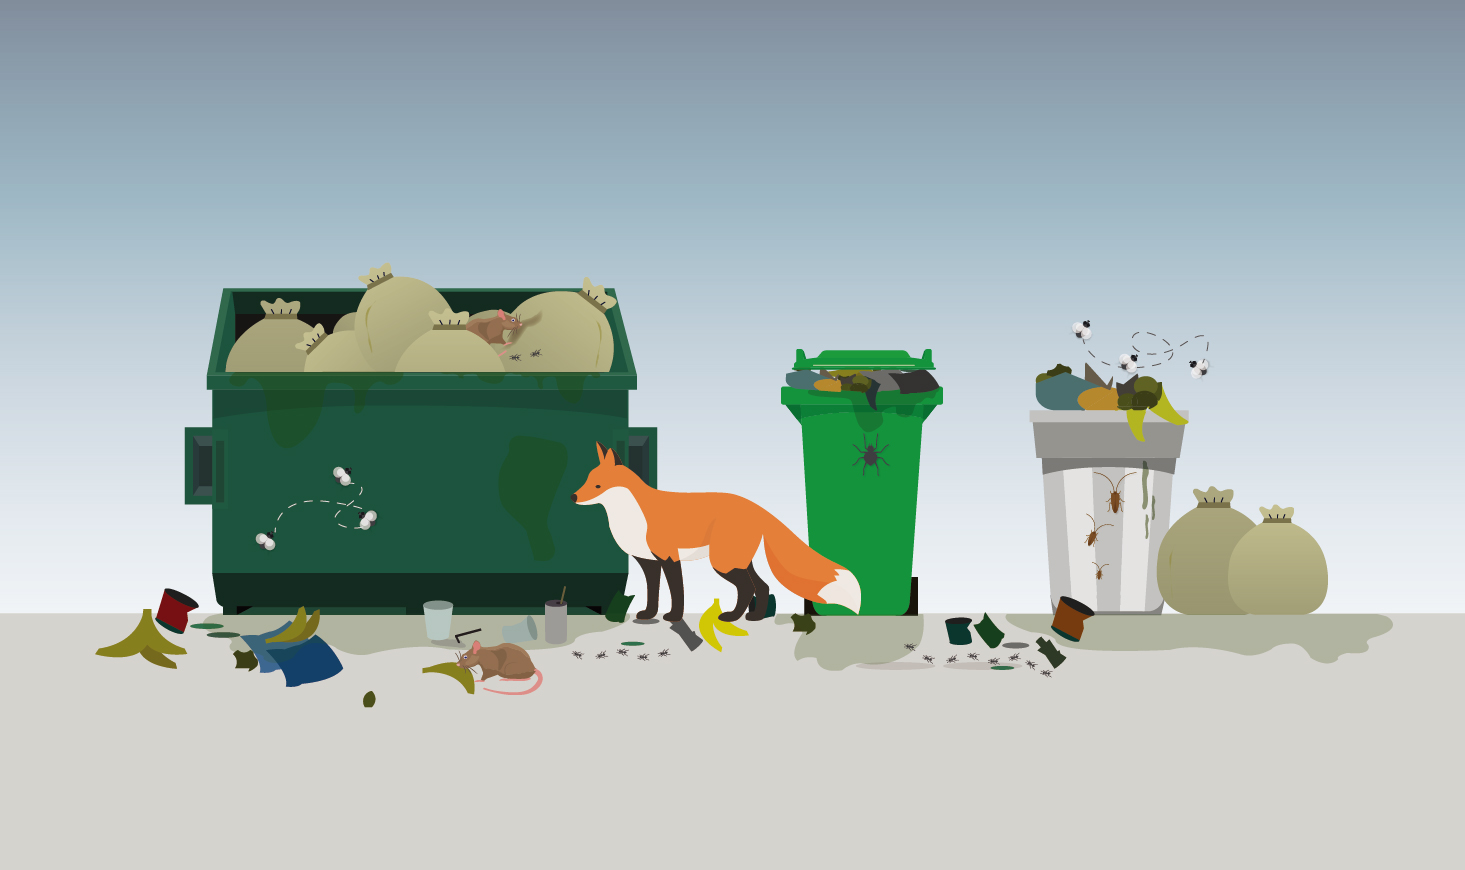 Overflowing garbage bins: 5 impacts on health and environment, and how to prevent